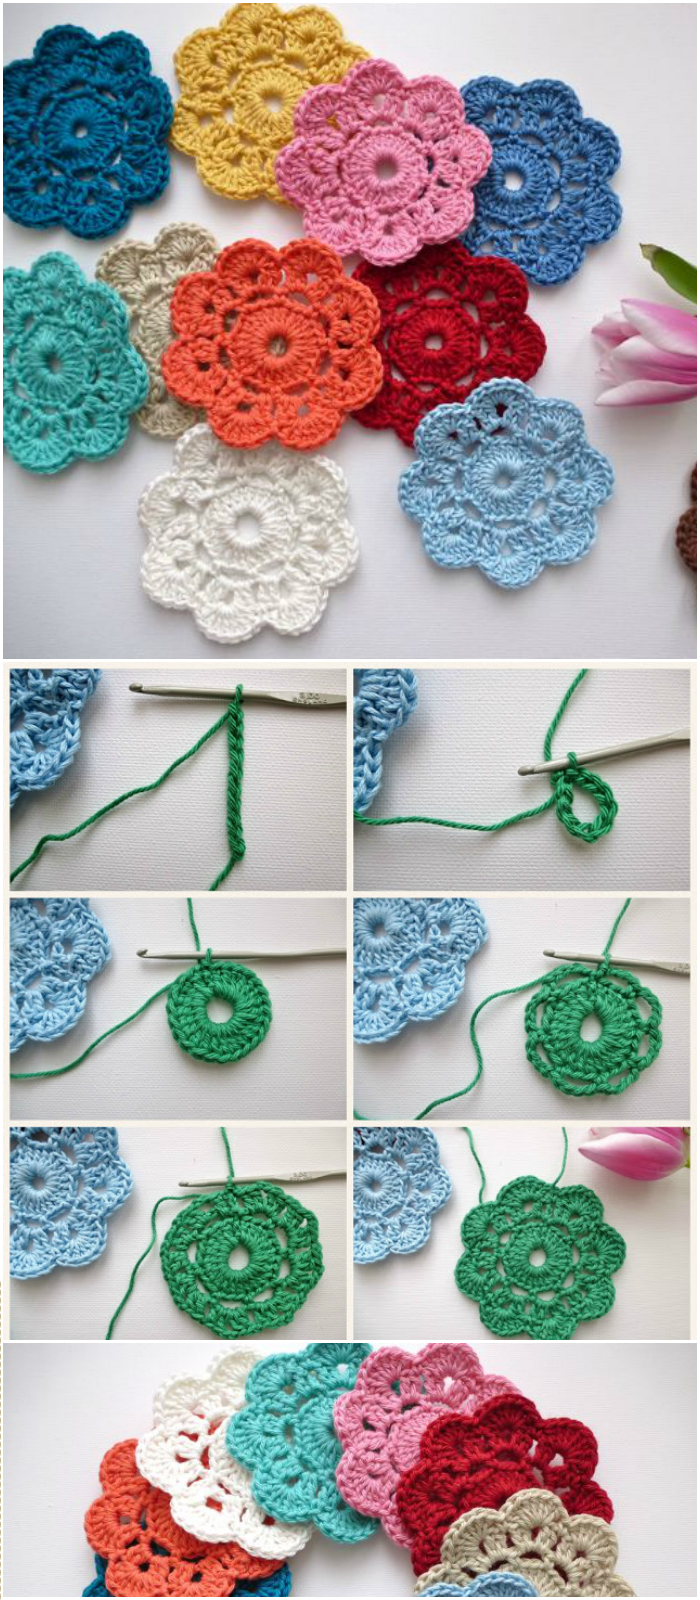 20 crochet flowers pattern to beautify your home diy home decor the maybelle crochet flower 20 crochet flowers pattern to beautify your home izmirmasajfo